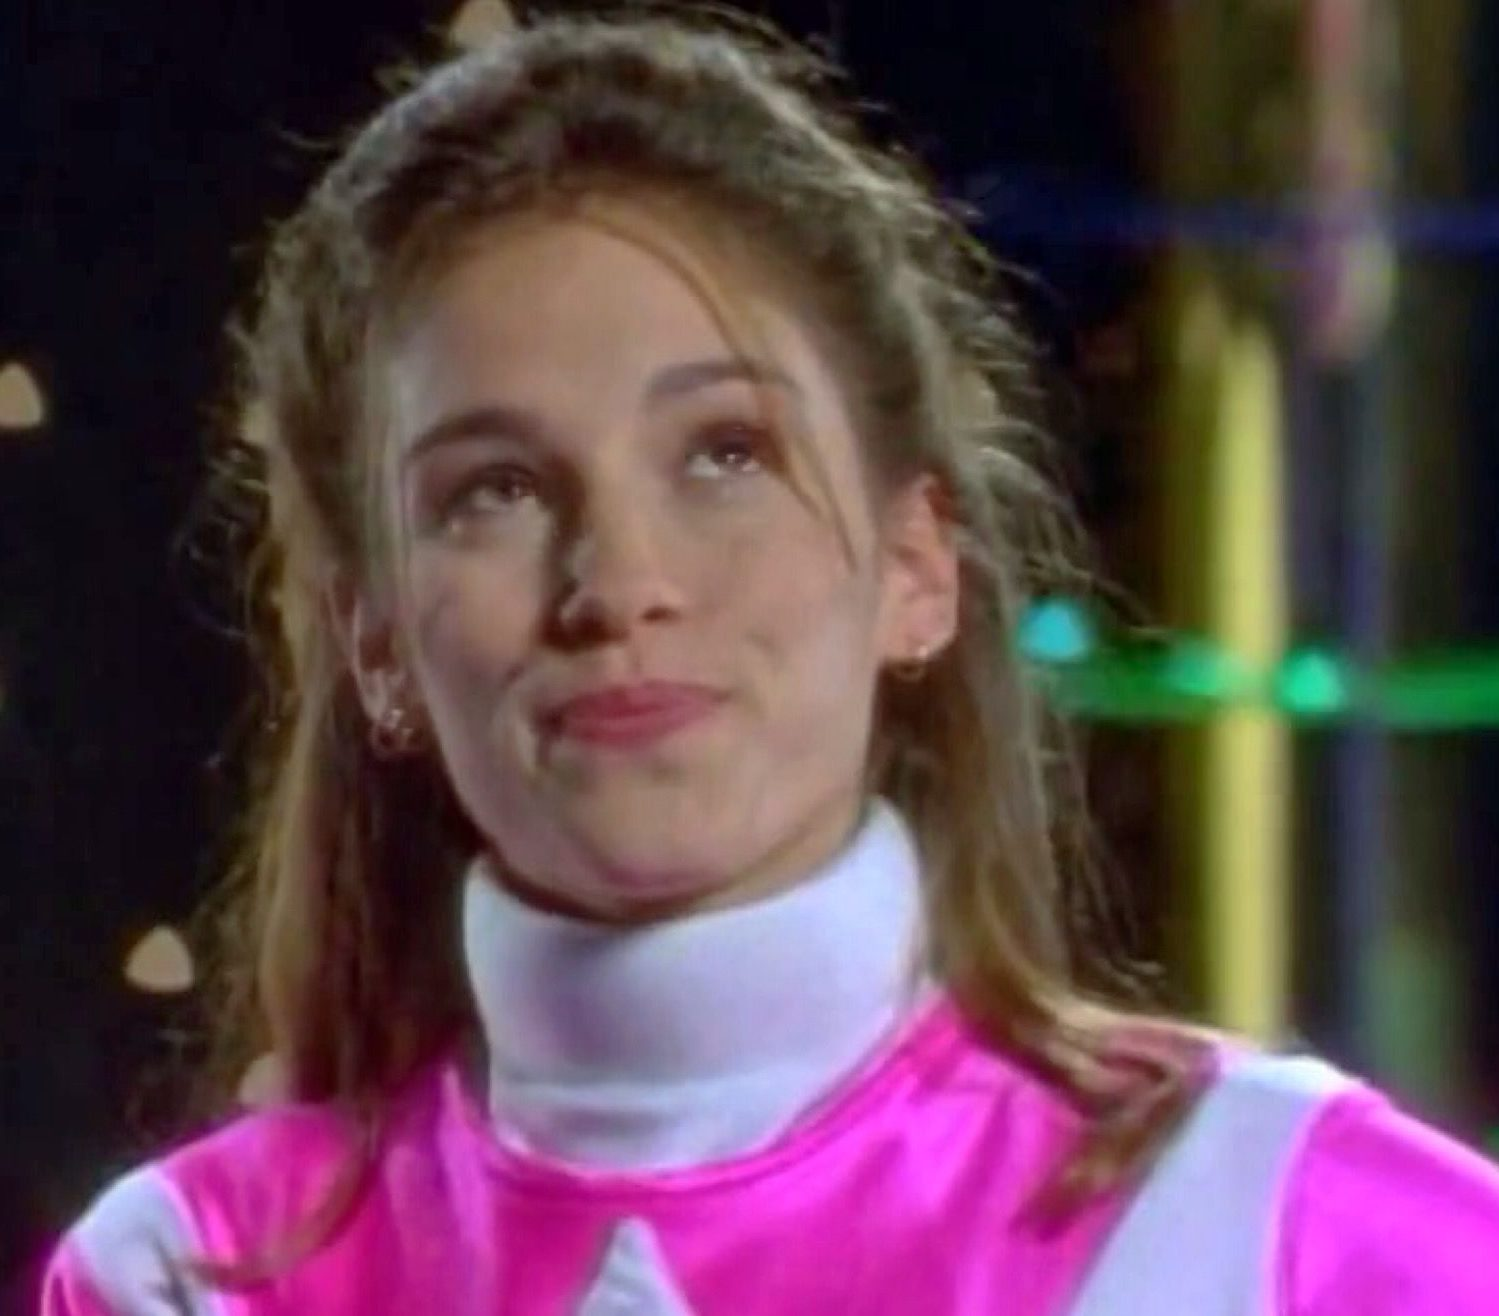 1484160832 mmpr pink witout helmet e1604585308535 21 90s TV Actresses We All Had A Crush On When We Were Younger